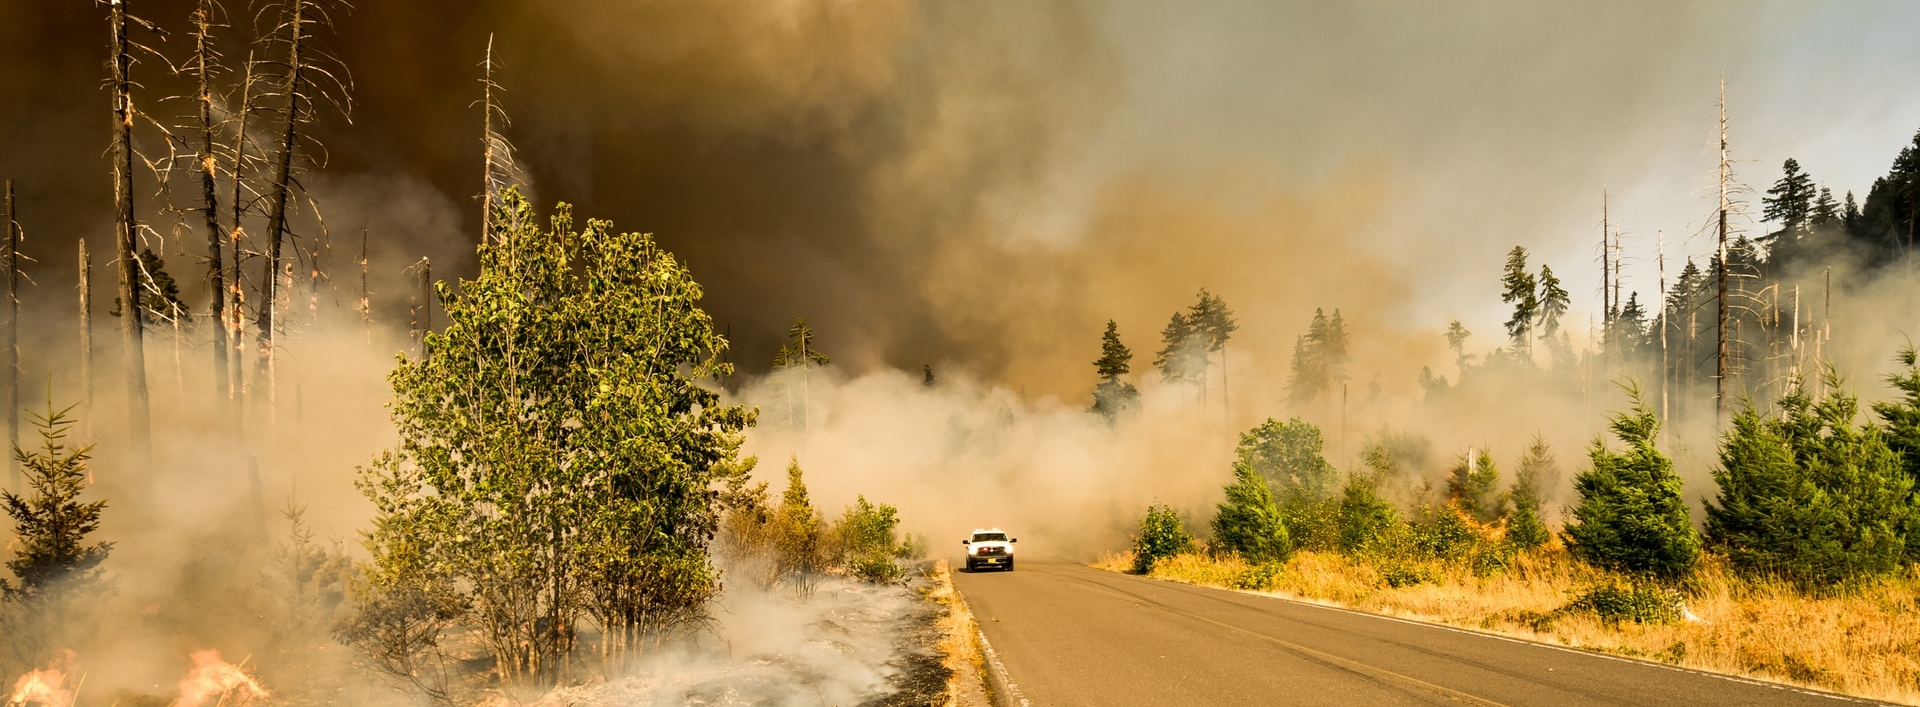 A wildfire burns next to a forest road